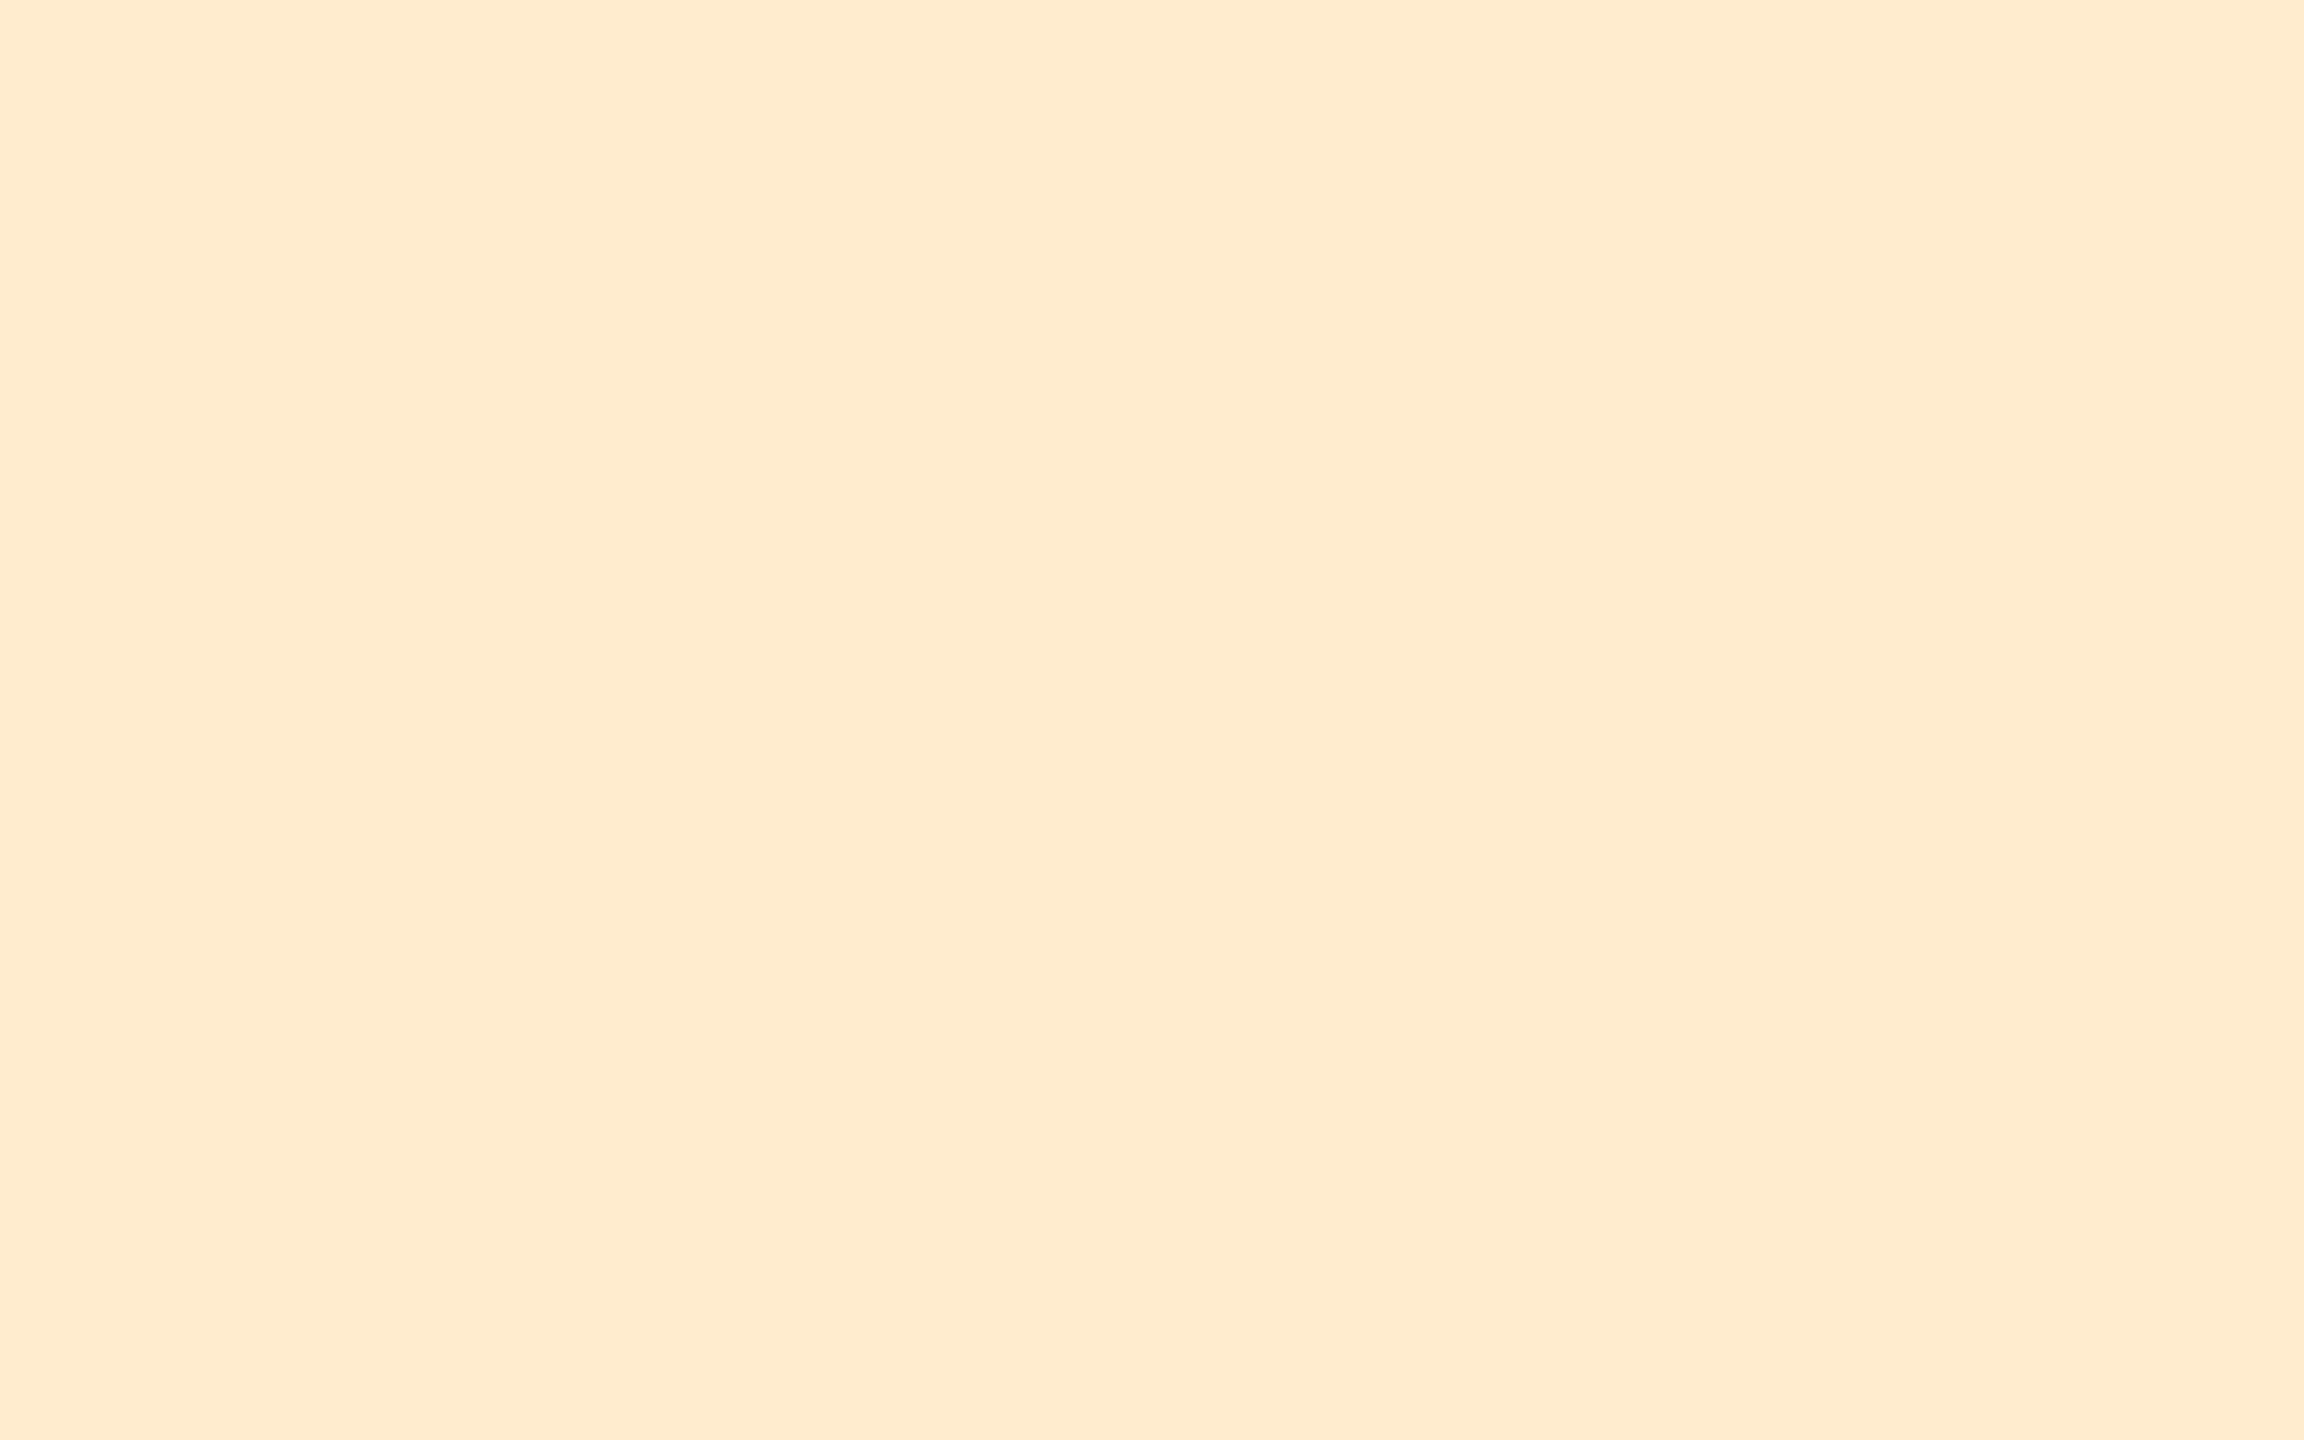 2304x1440 Blanched Almond Solid Color Background